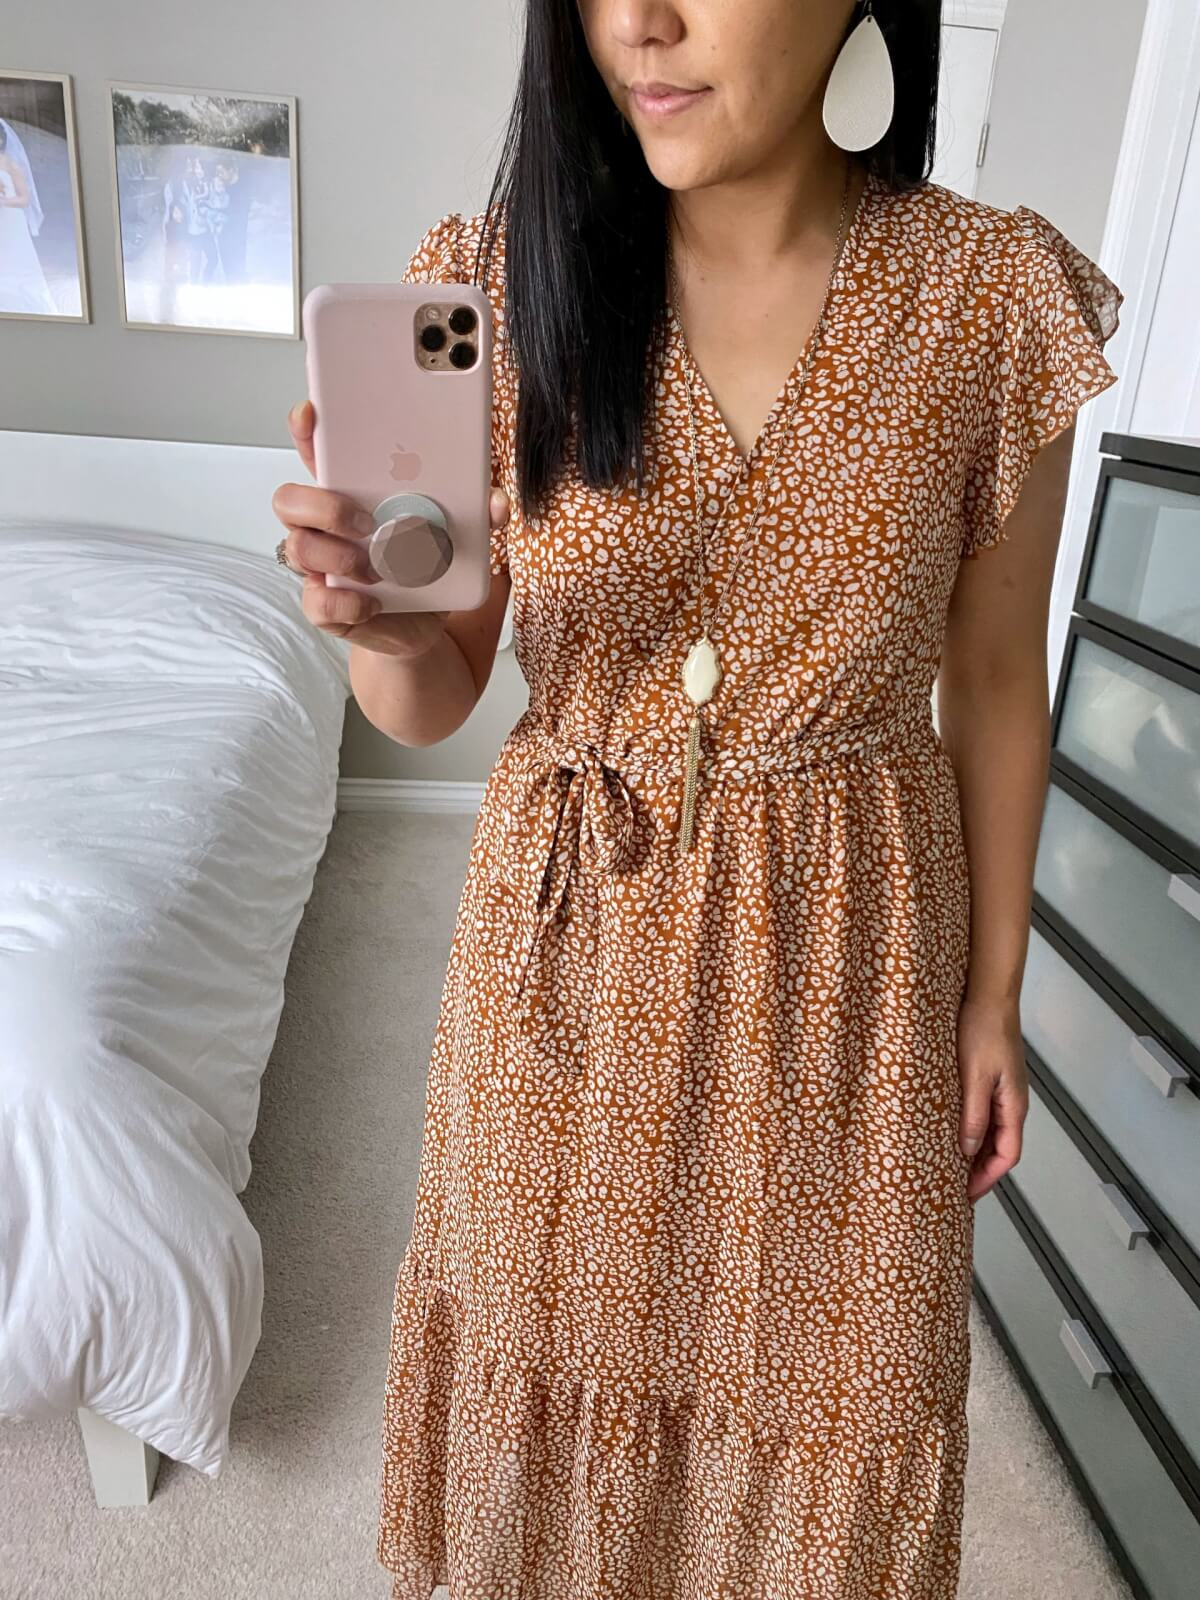 Dressy Outfit: Amazon rust bohemian wrap tiered midi dress + white earrings + pendant necklace